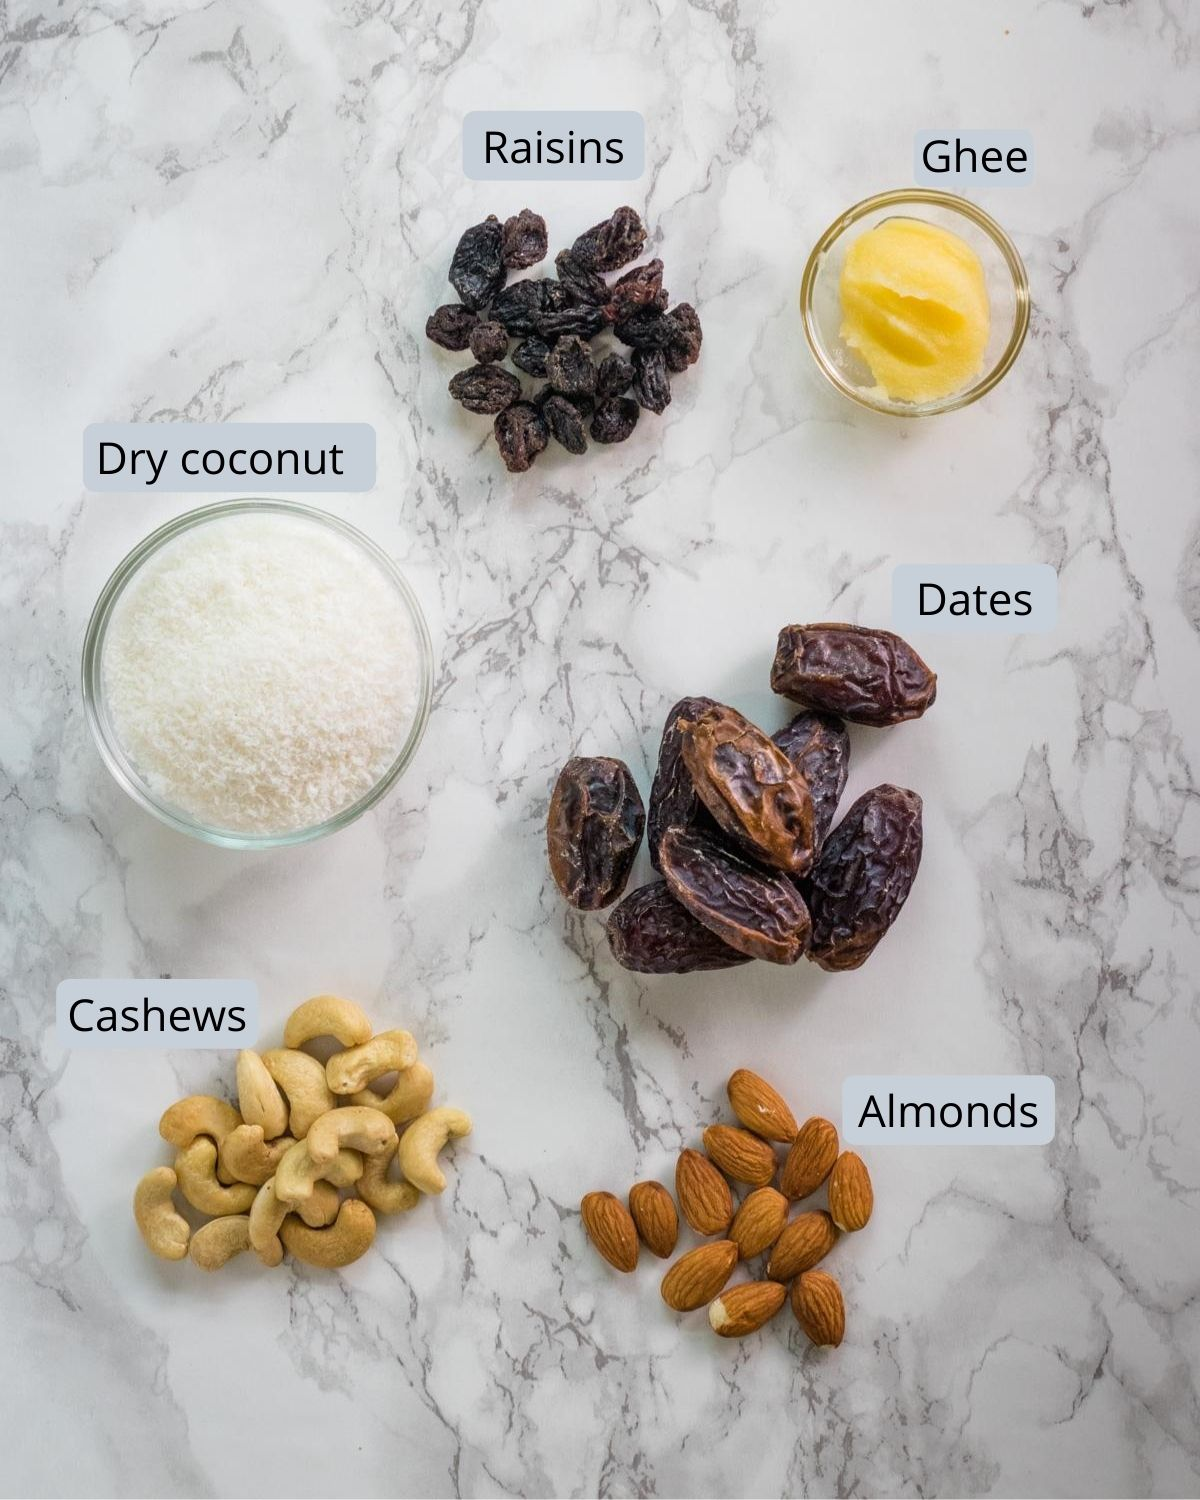 image of ingredients used in dry fruits modak. Shows dates, almonds, cashews, raisins, coconut and ghee